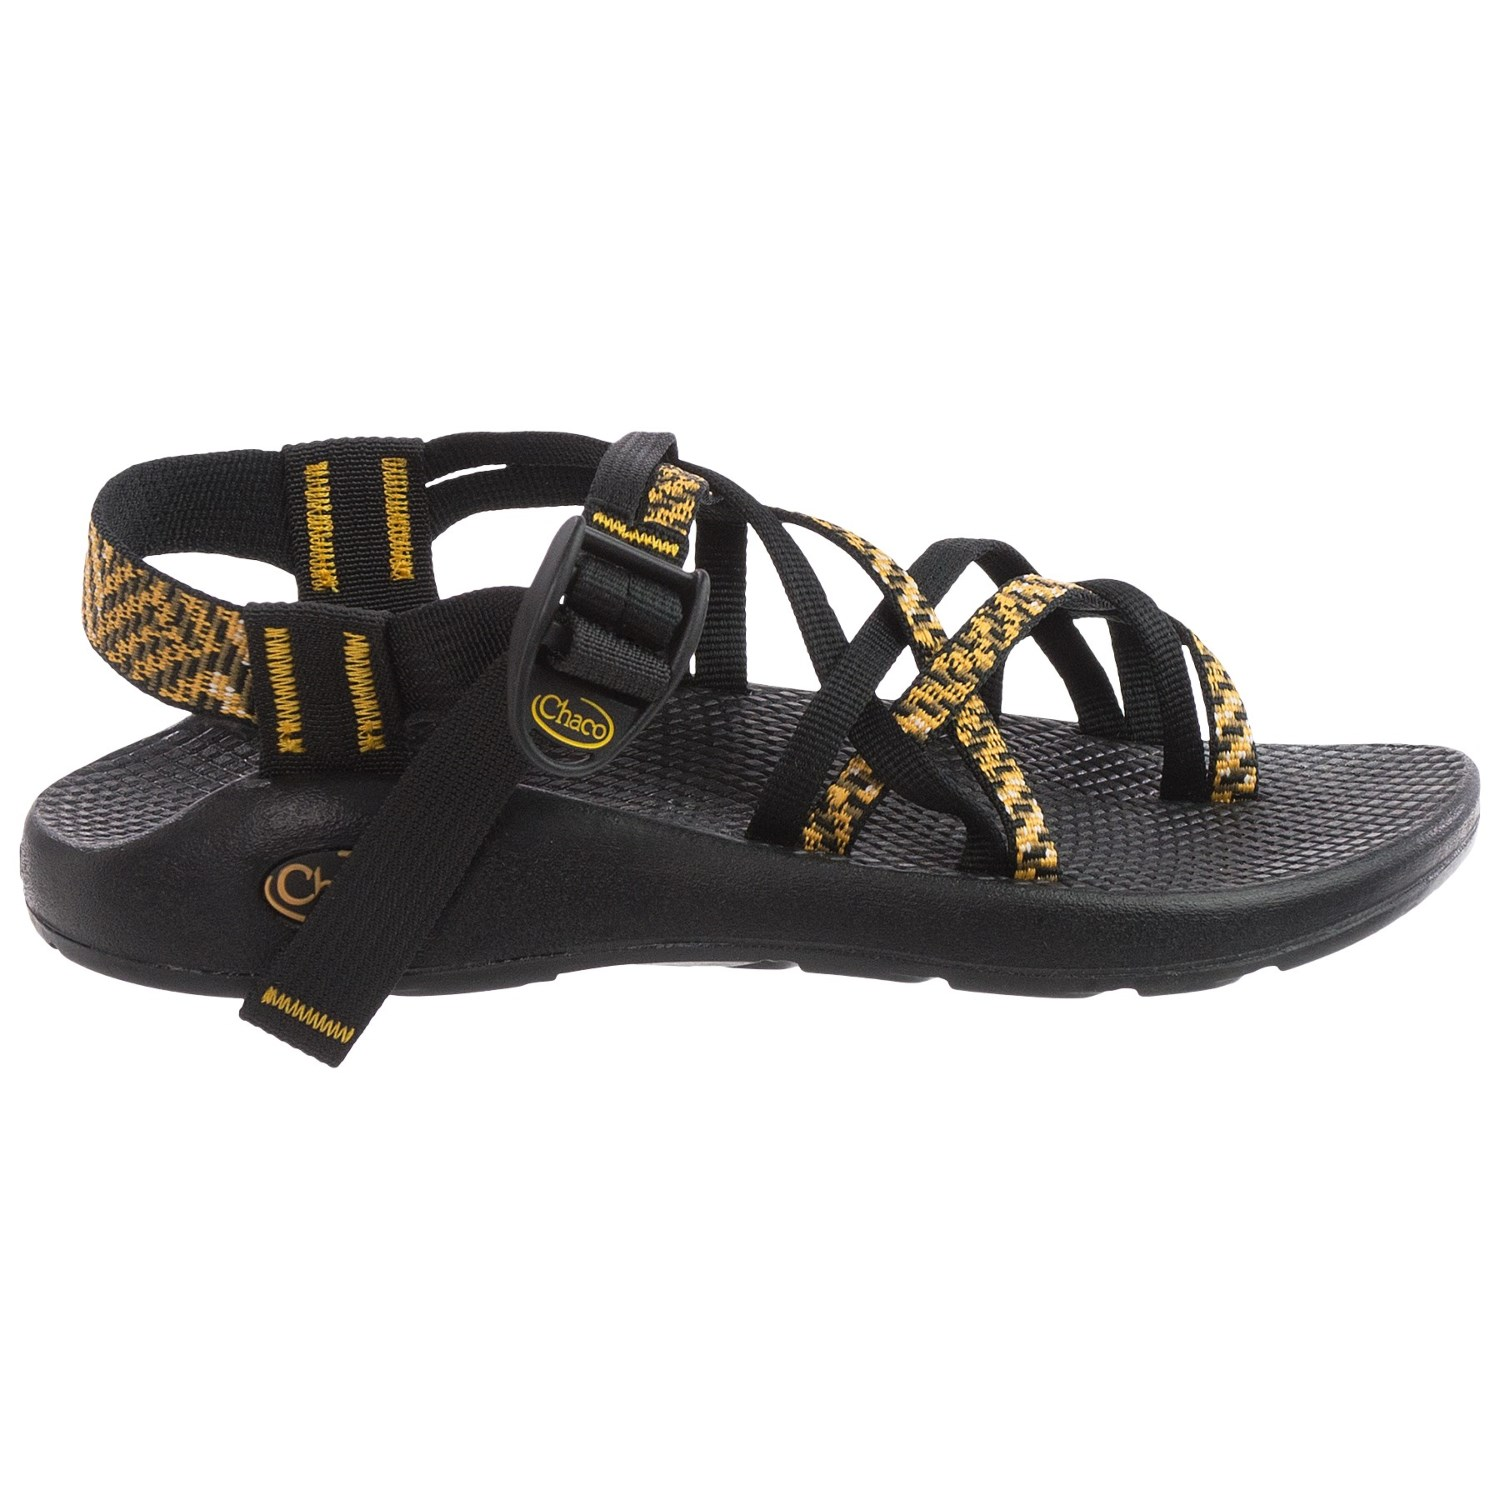 Shop for Chaco at REI. Get FREE SHIPPING with $50 minimum purchase. Top quality, great selection and expert advice. % Satisfaction Guarantee.